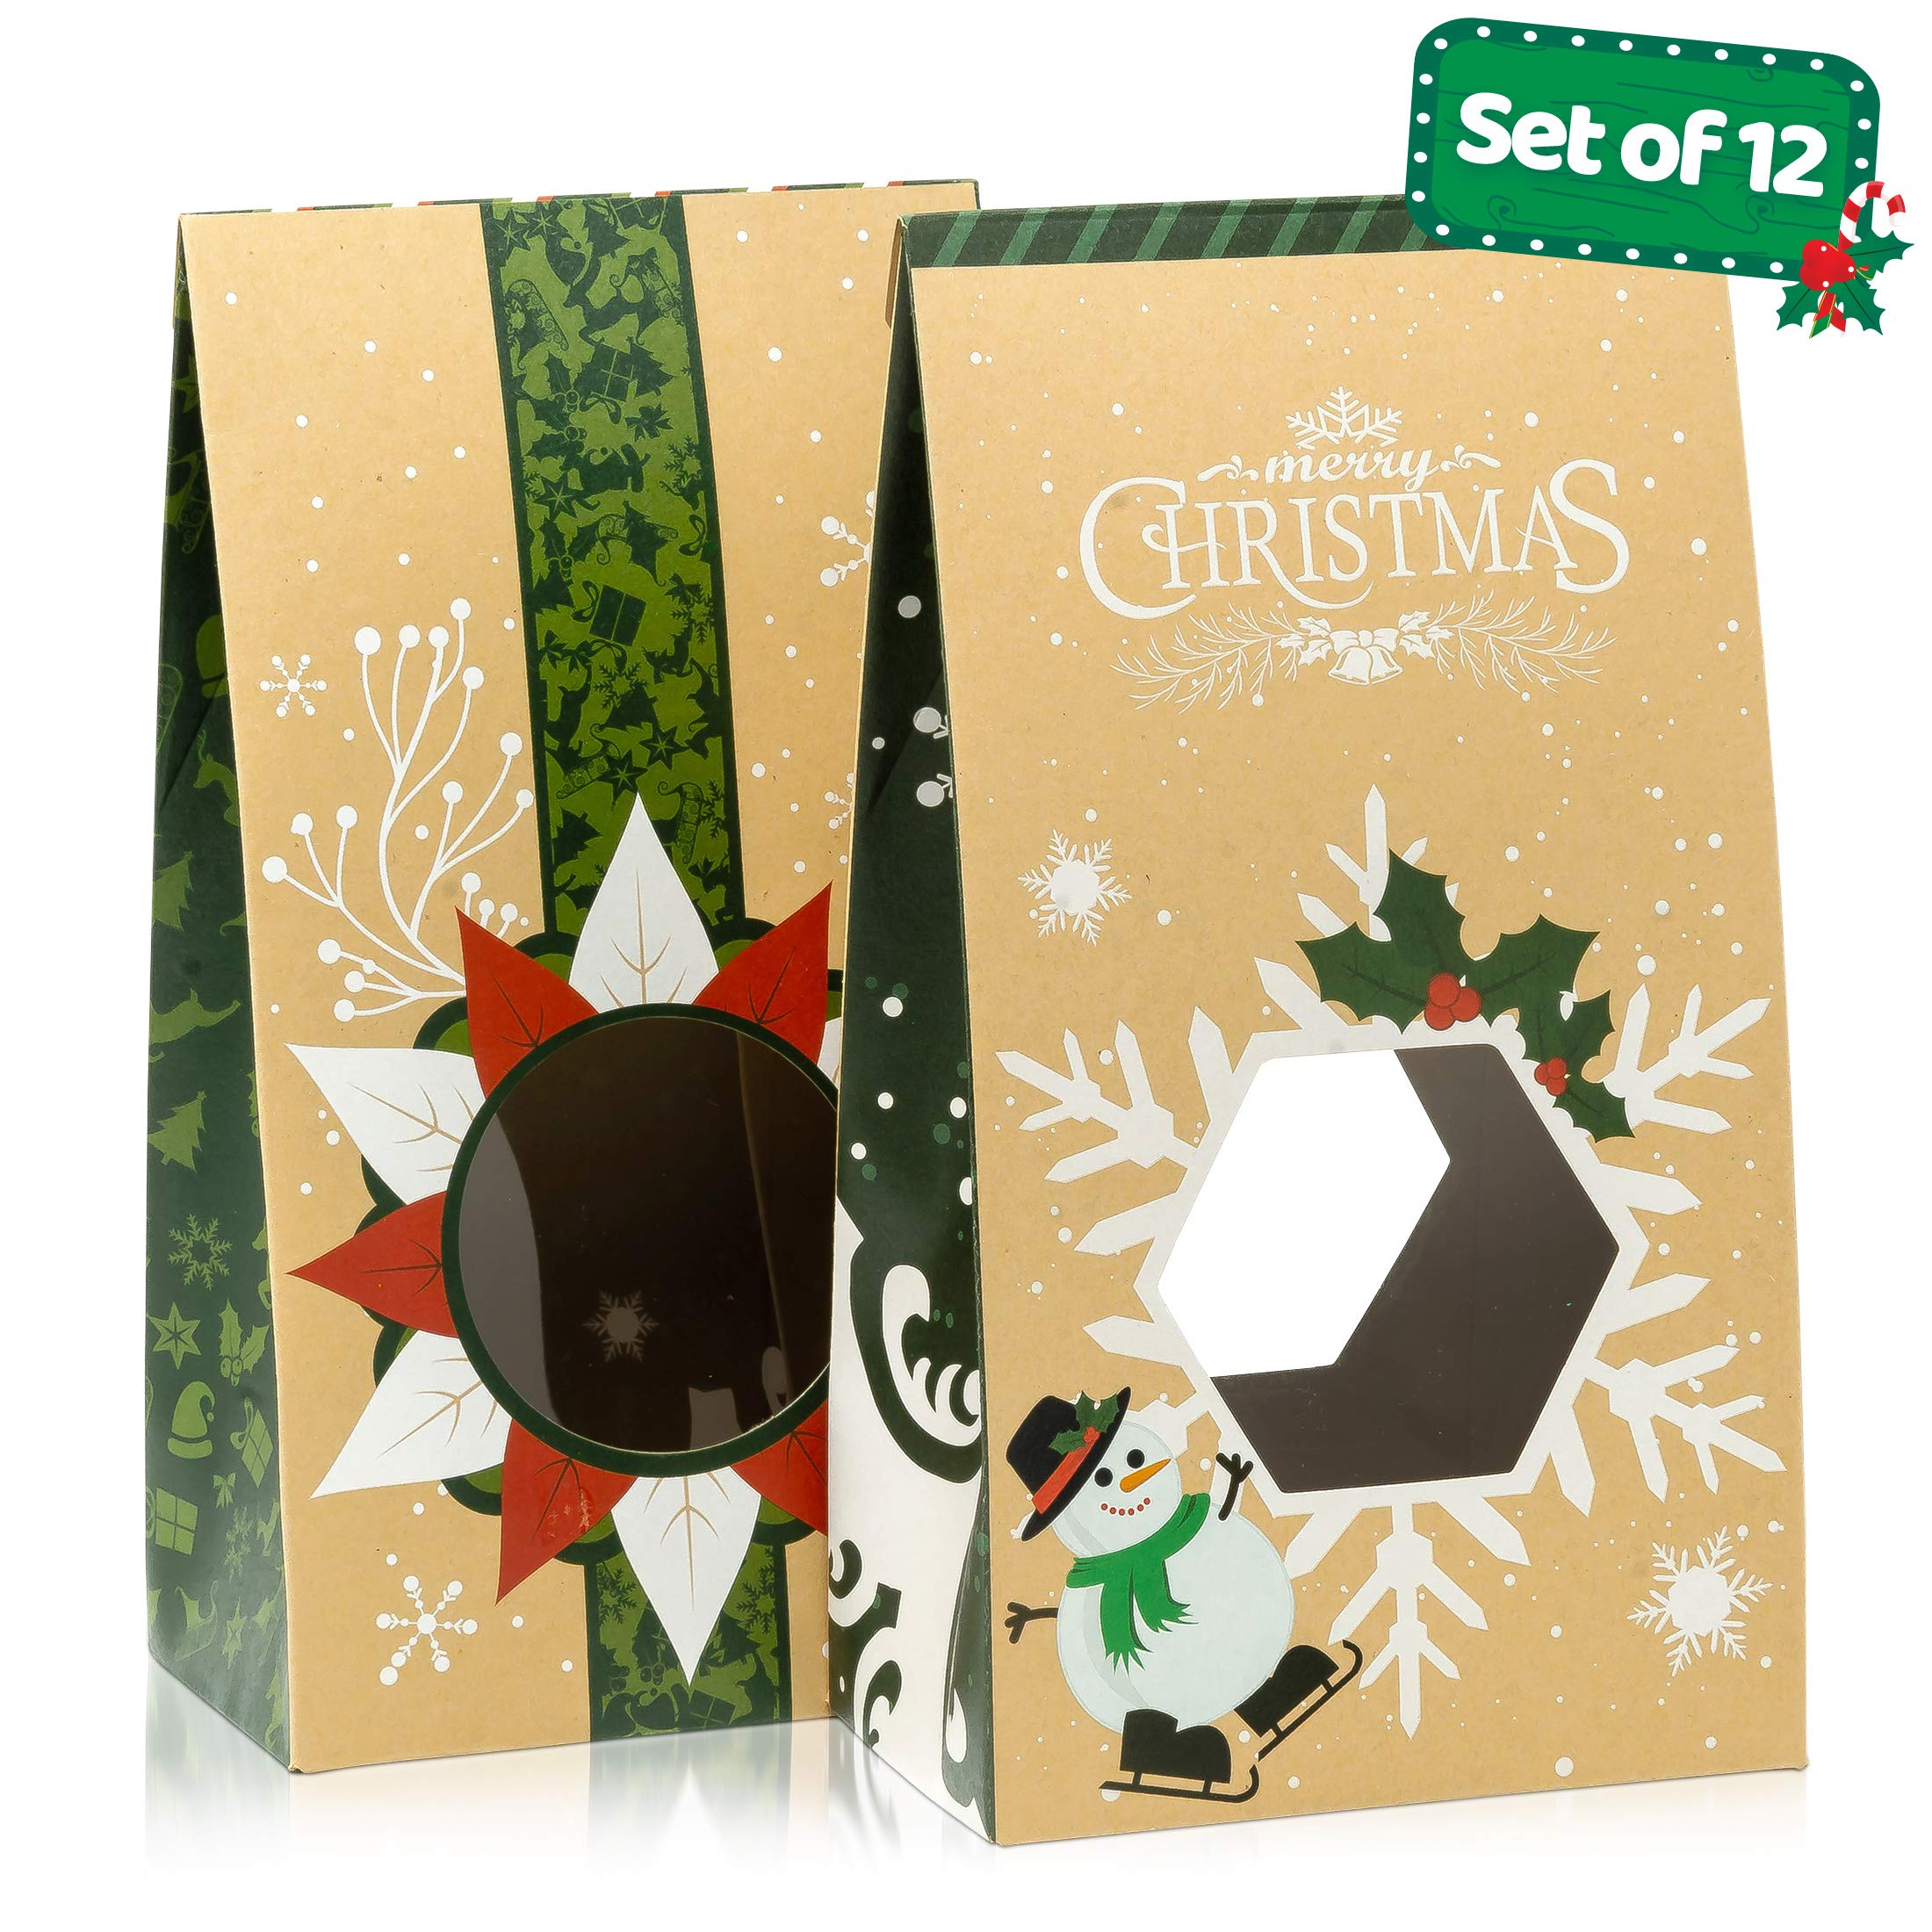 Cookie Bags For Gift Giving - Set of 12 Christmas Treat Boxes - Food Bags For Gifts - 2 Unique Decorative Treat Bags - Easy Assemble Cookie Containers - Premium Candy Boxes Packaging by Joyousa